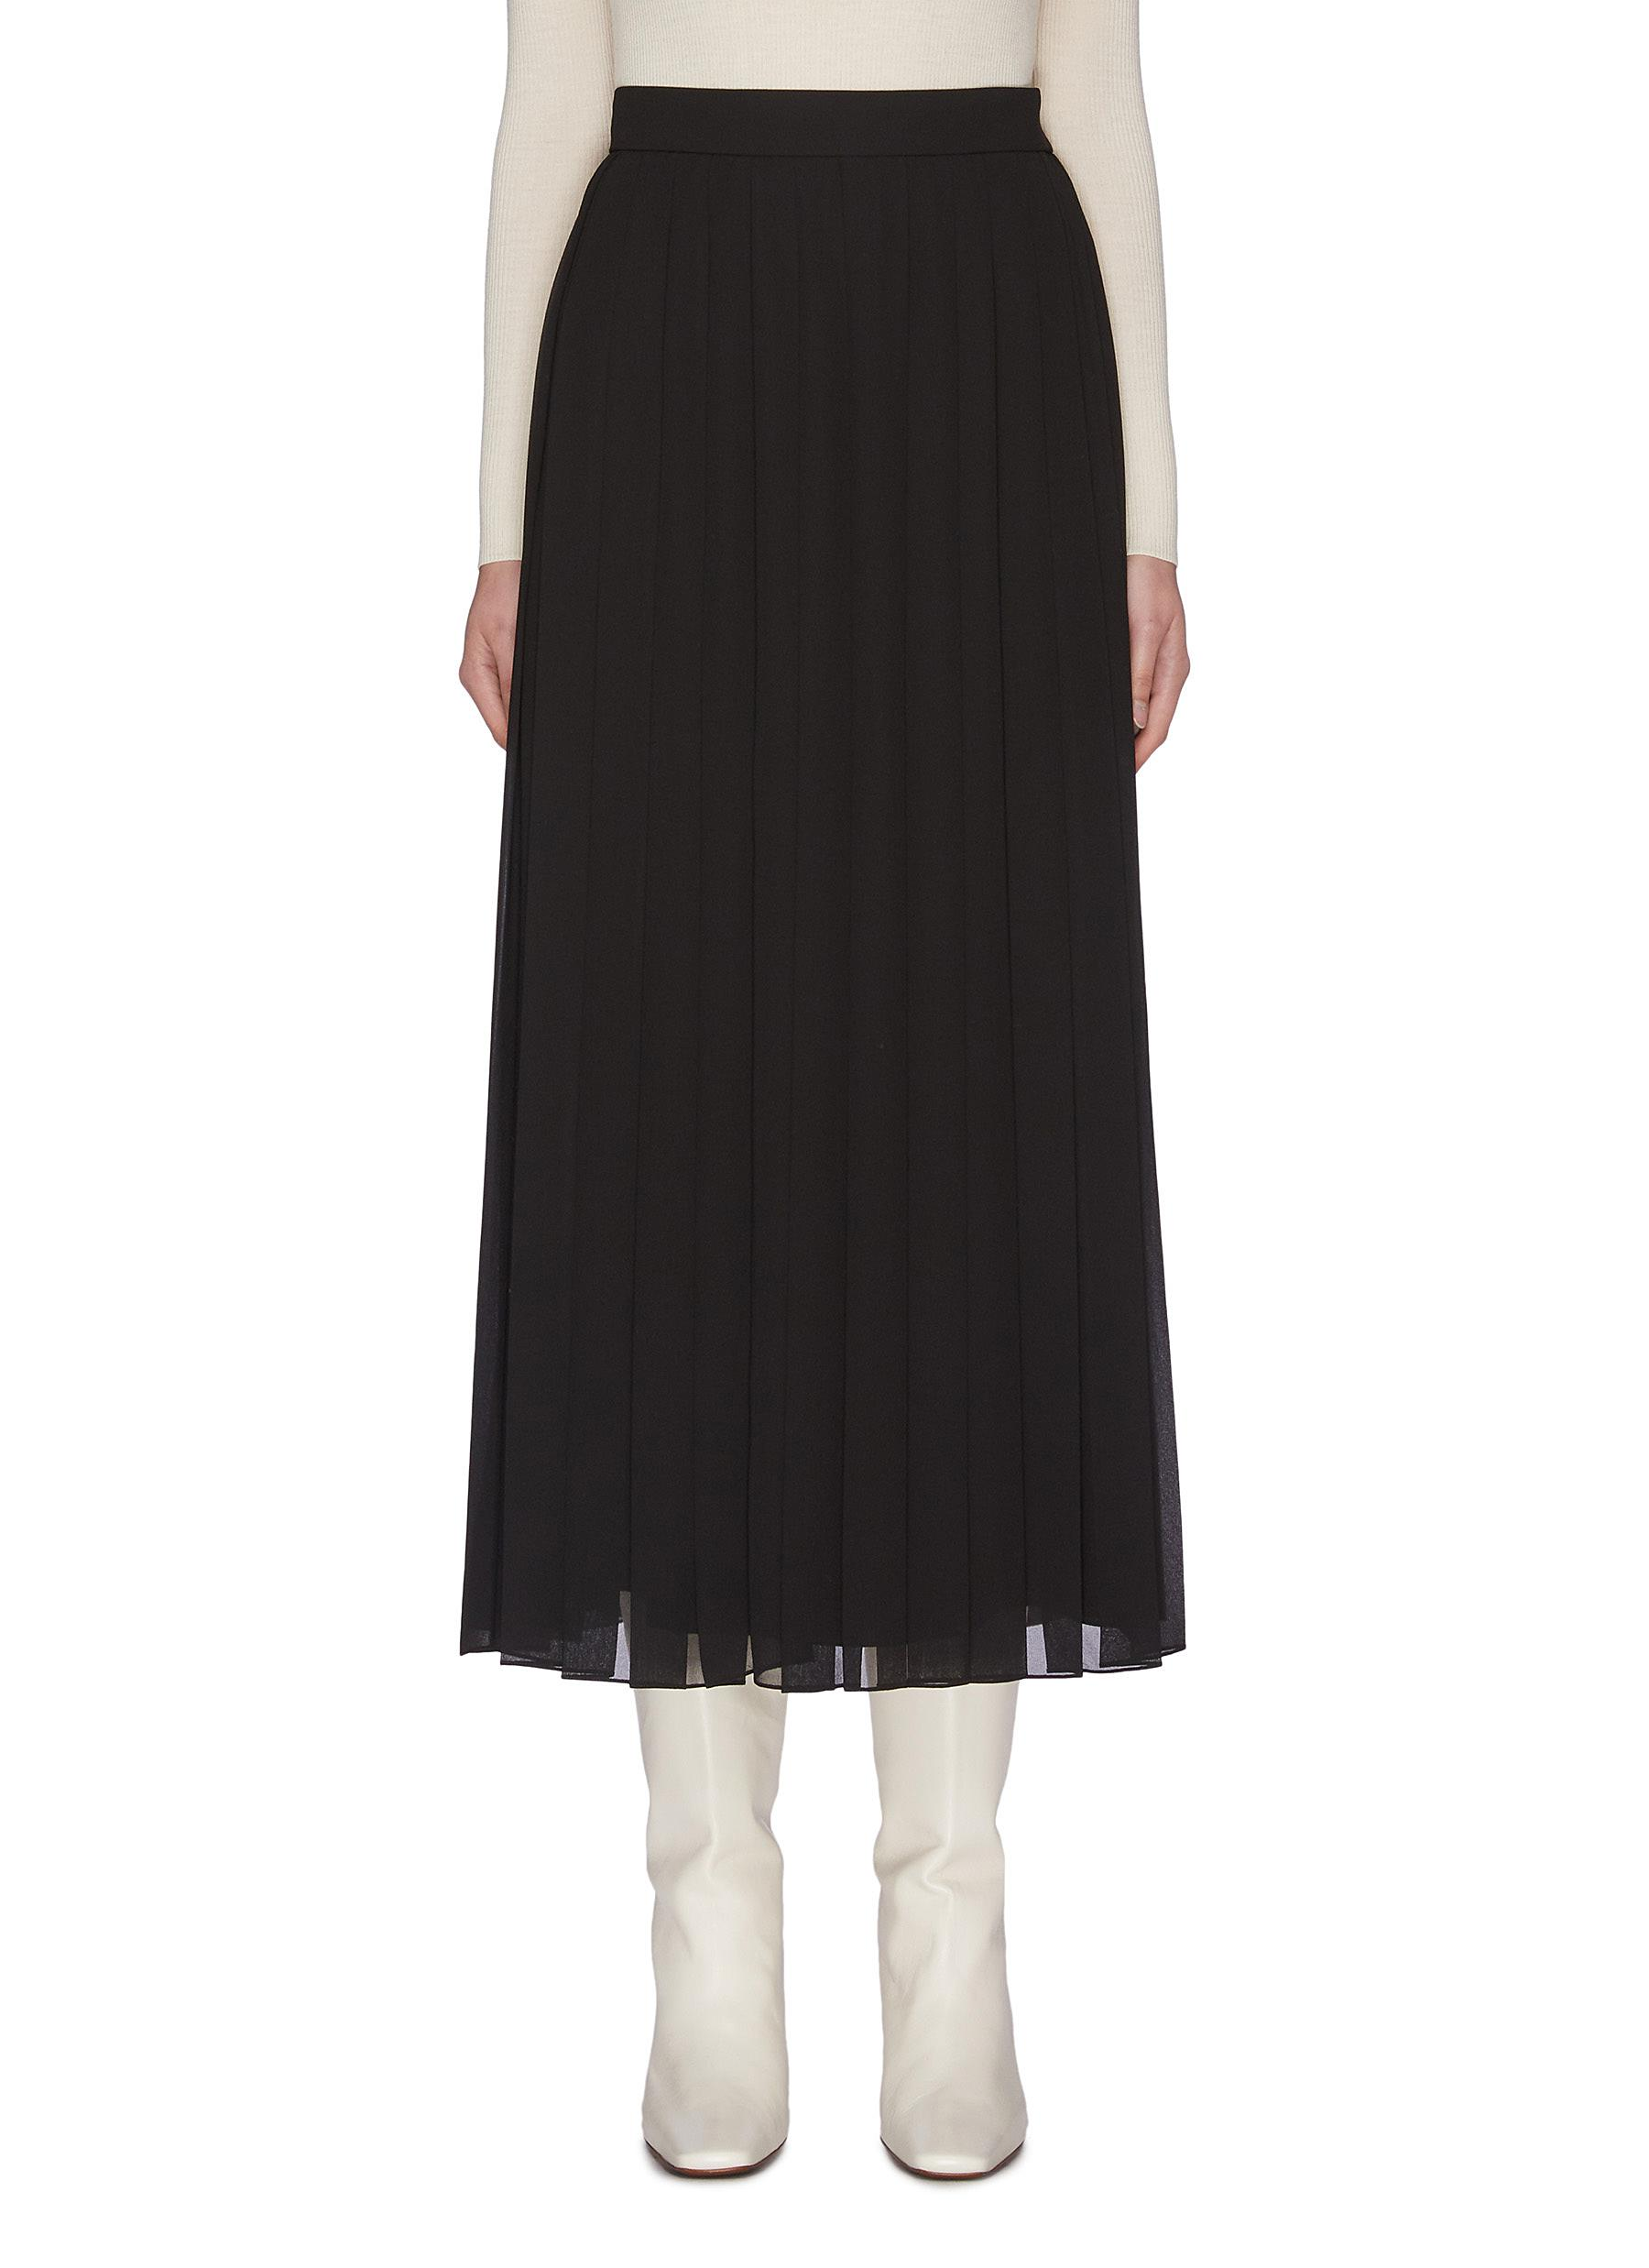 Buy The Row Skirts 'Magda' pleated georgette midi skirt